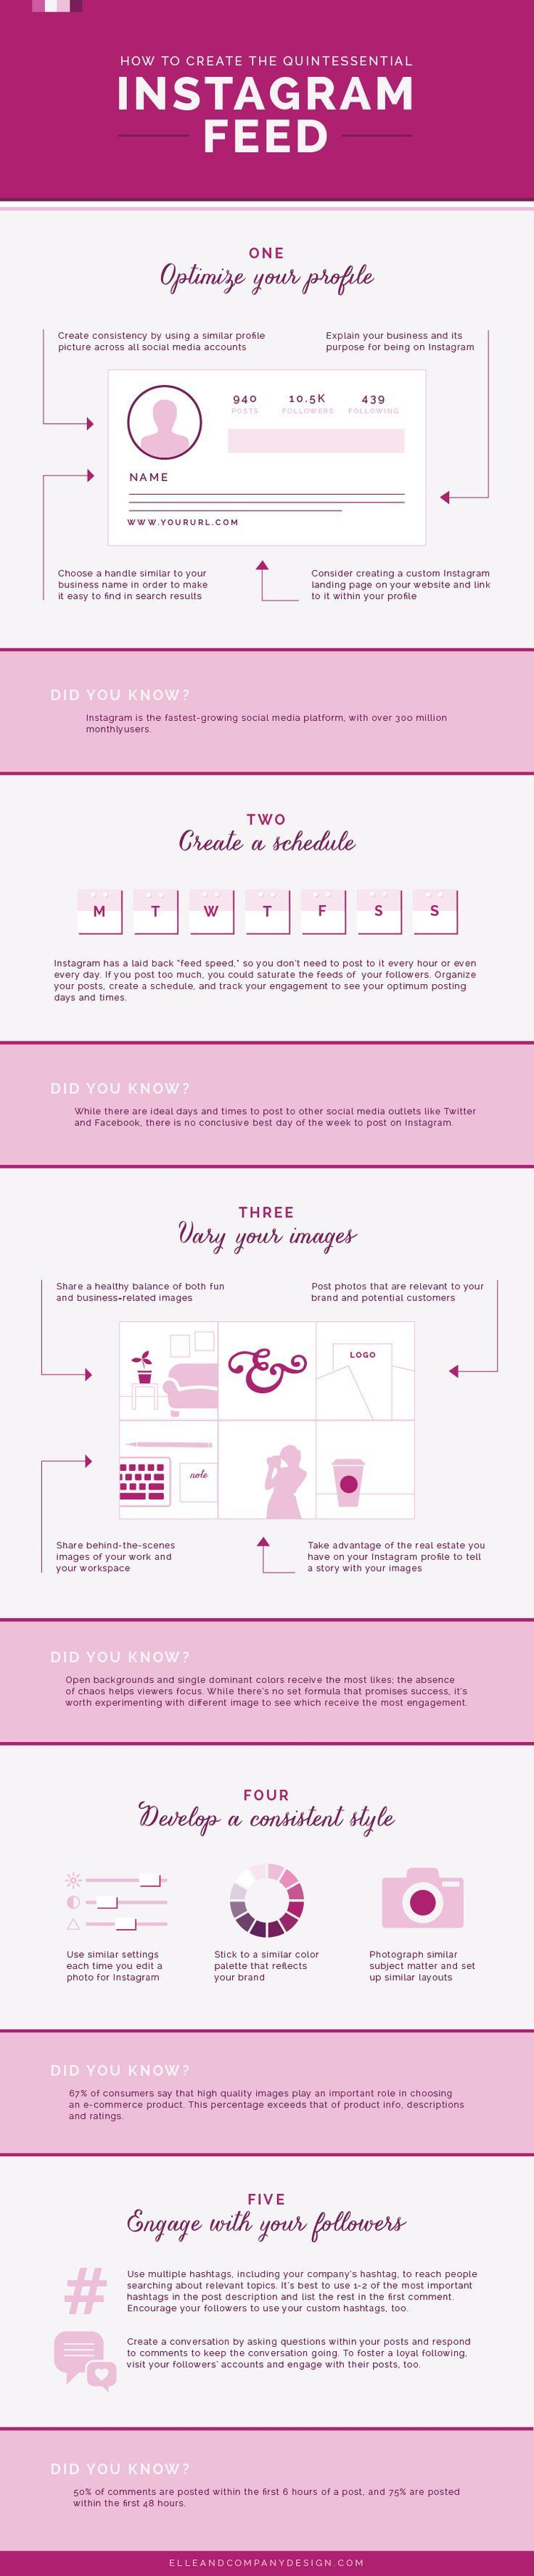 How to Create the Quintessential Instagram Feed - #infographic